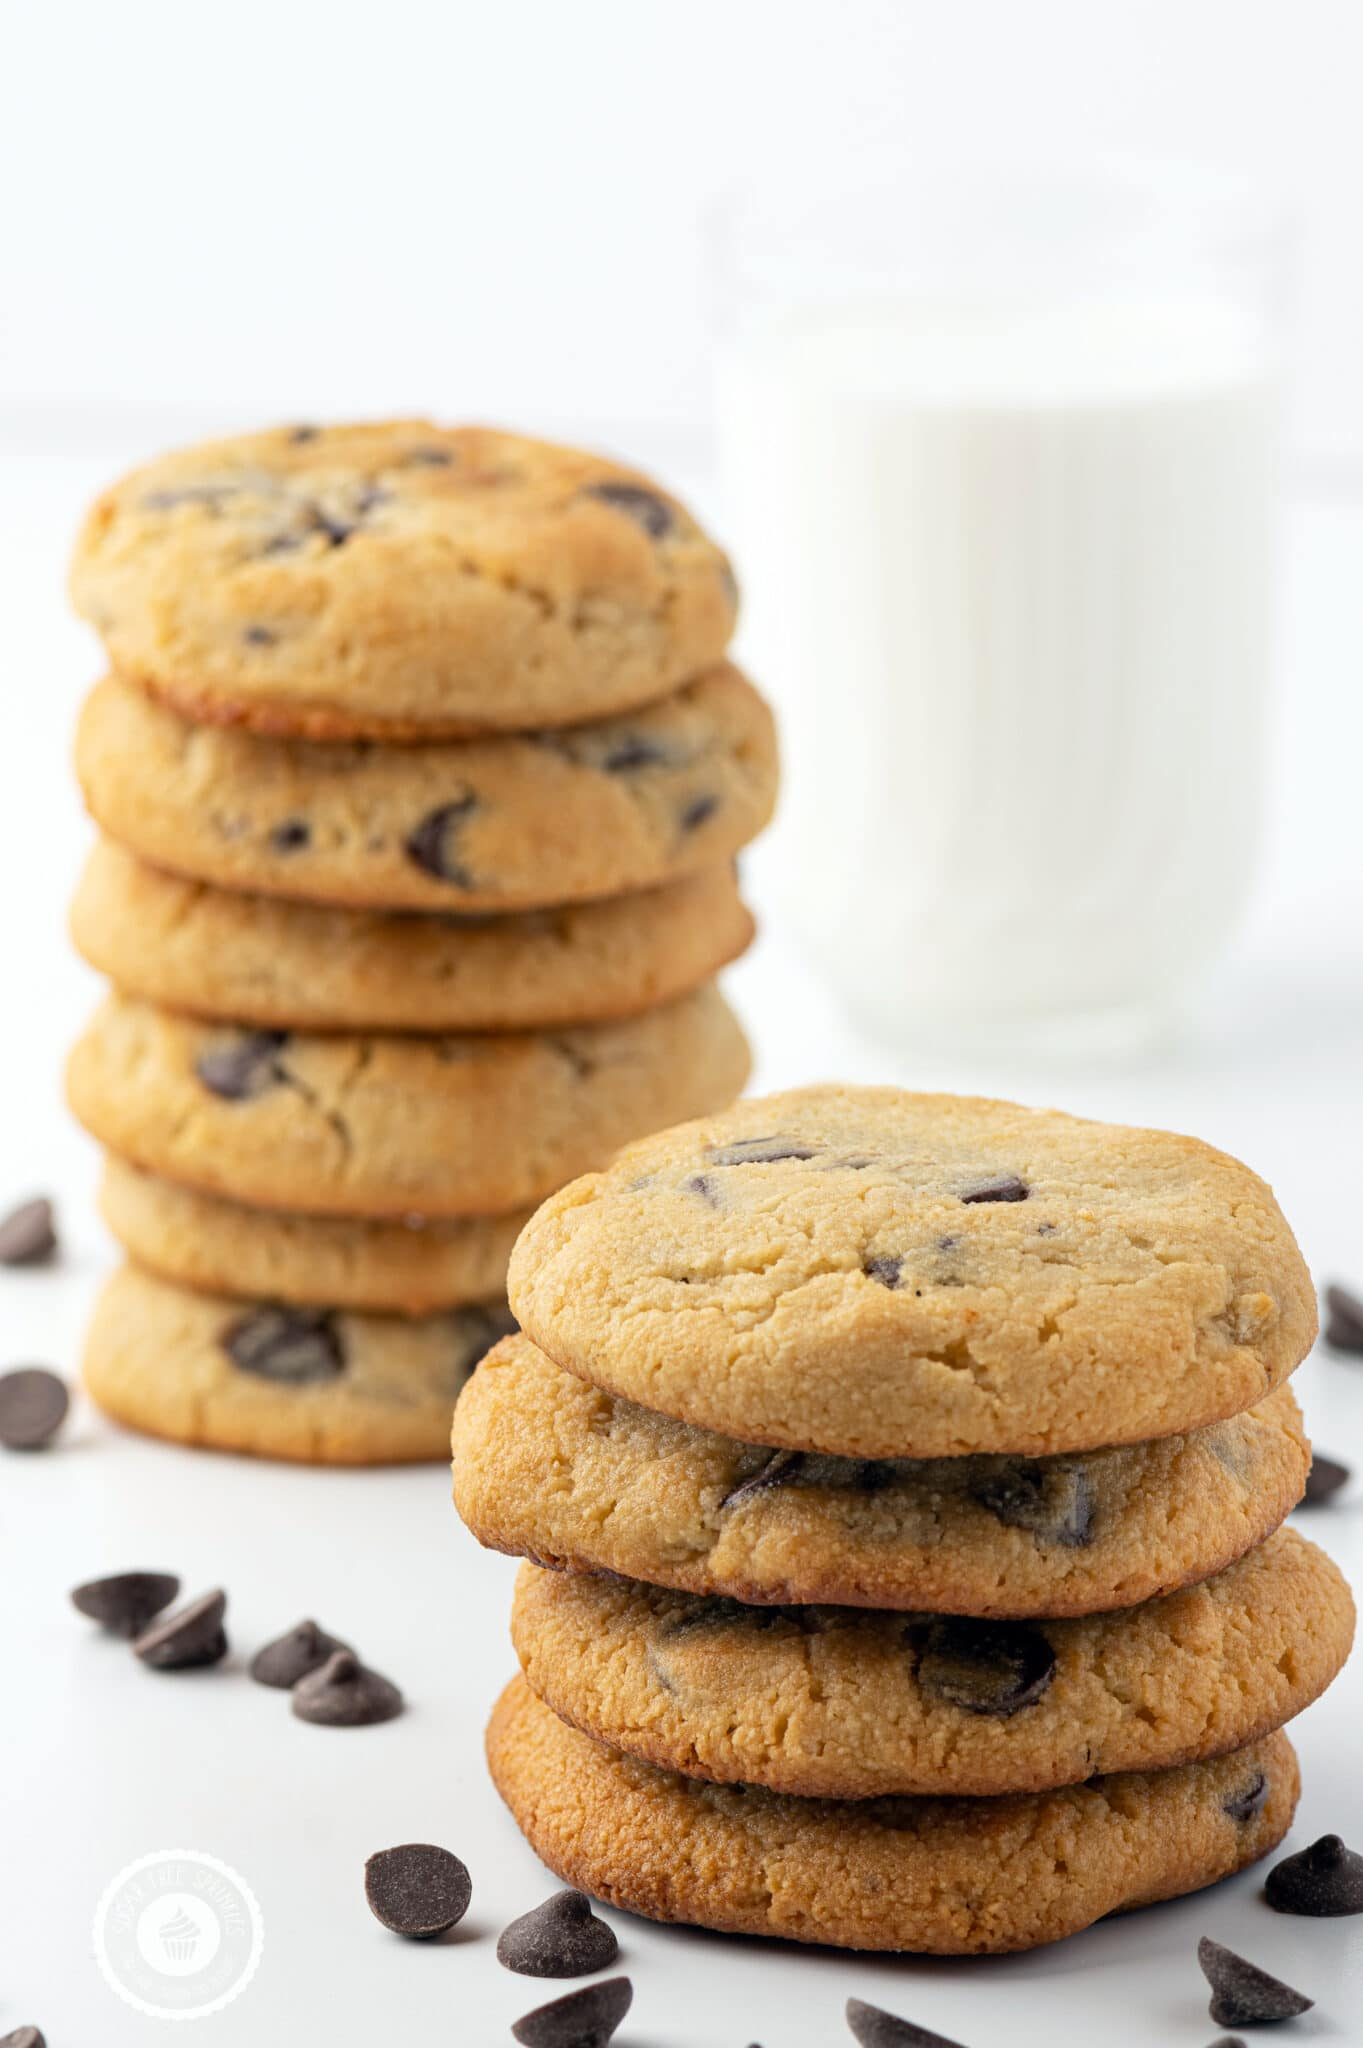 Stacks of  chocolate chip cookies on a white background with scattered chocolate chips and a glass in the background filled with milk.